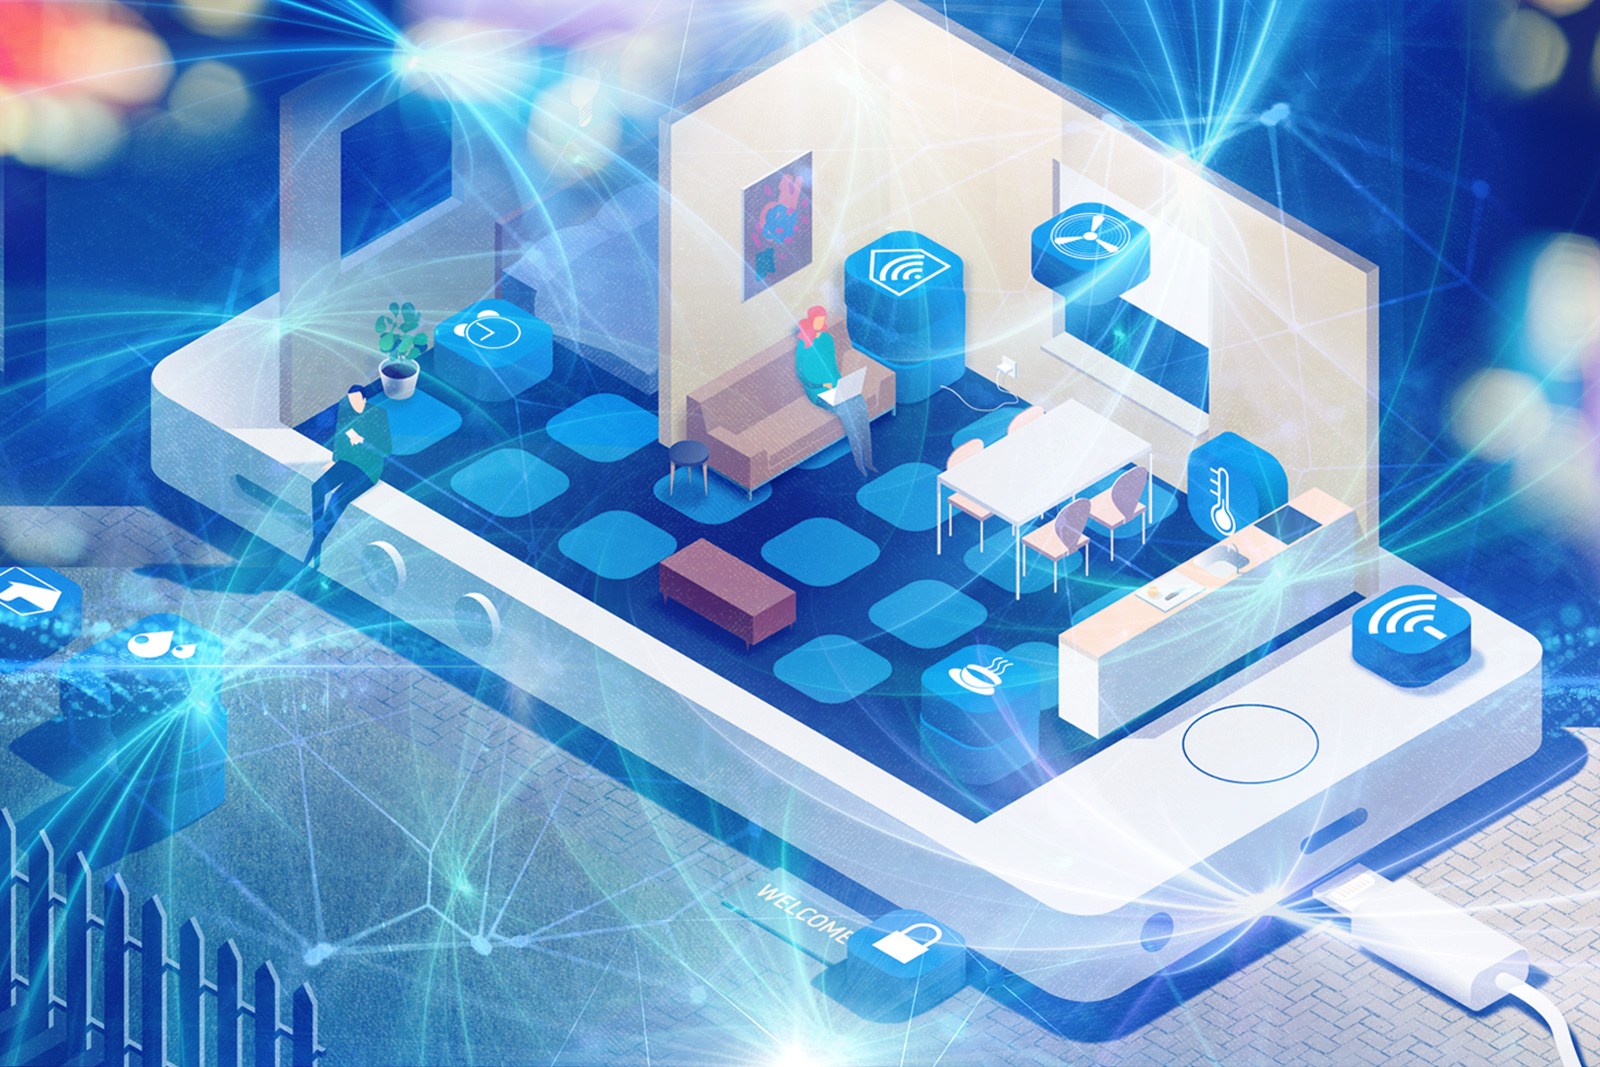 Developing the Internet of Things (IoT) Apps for Smart Homes